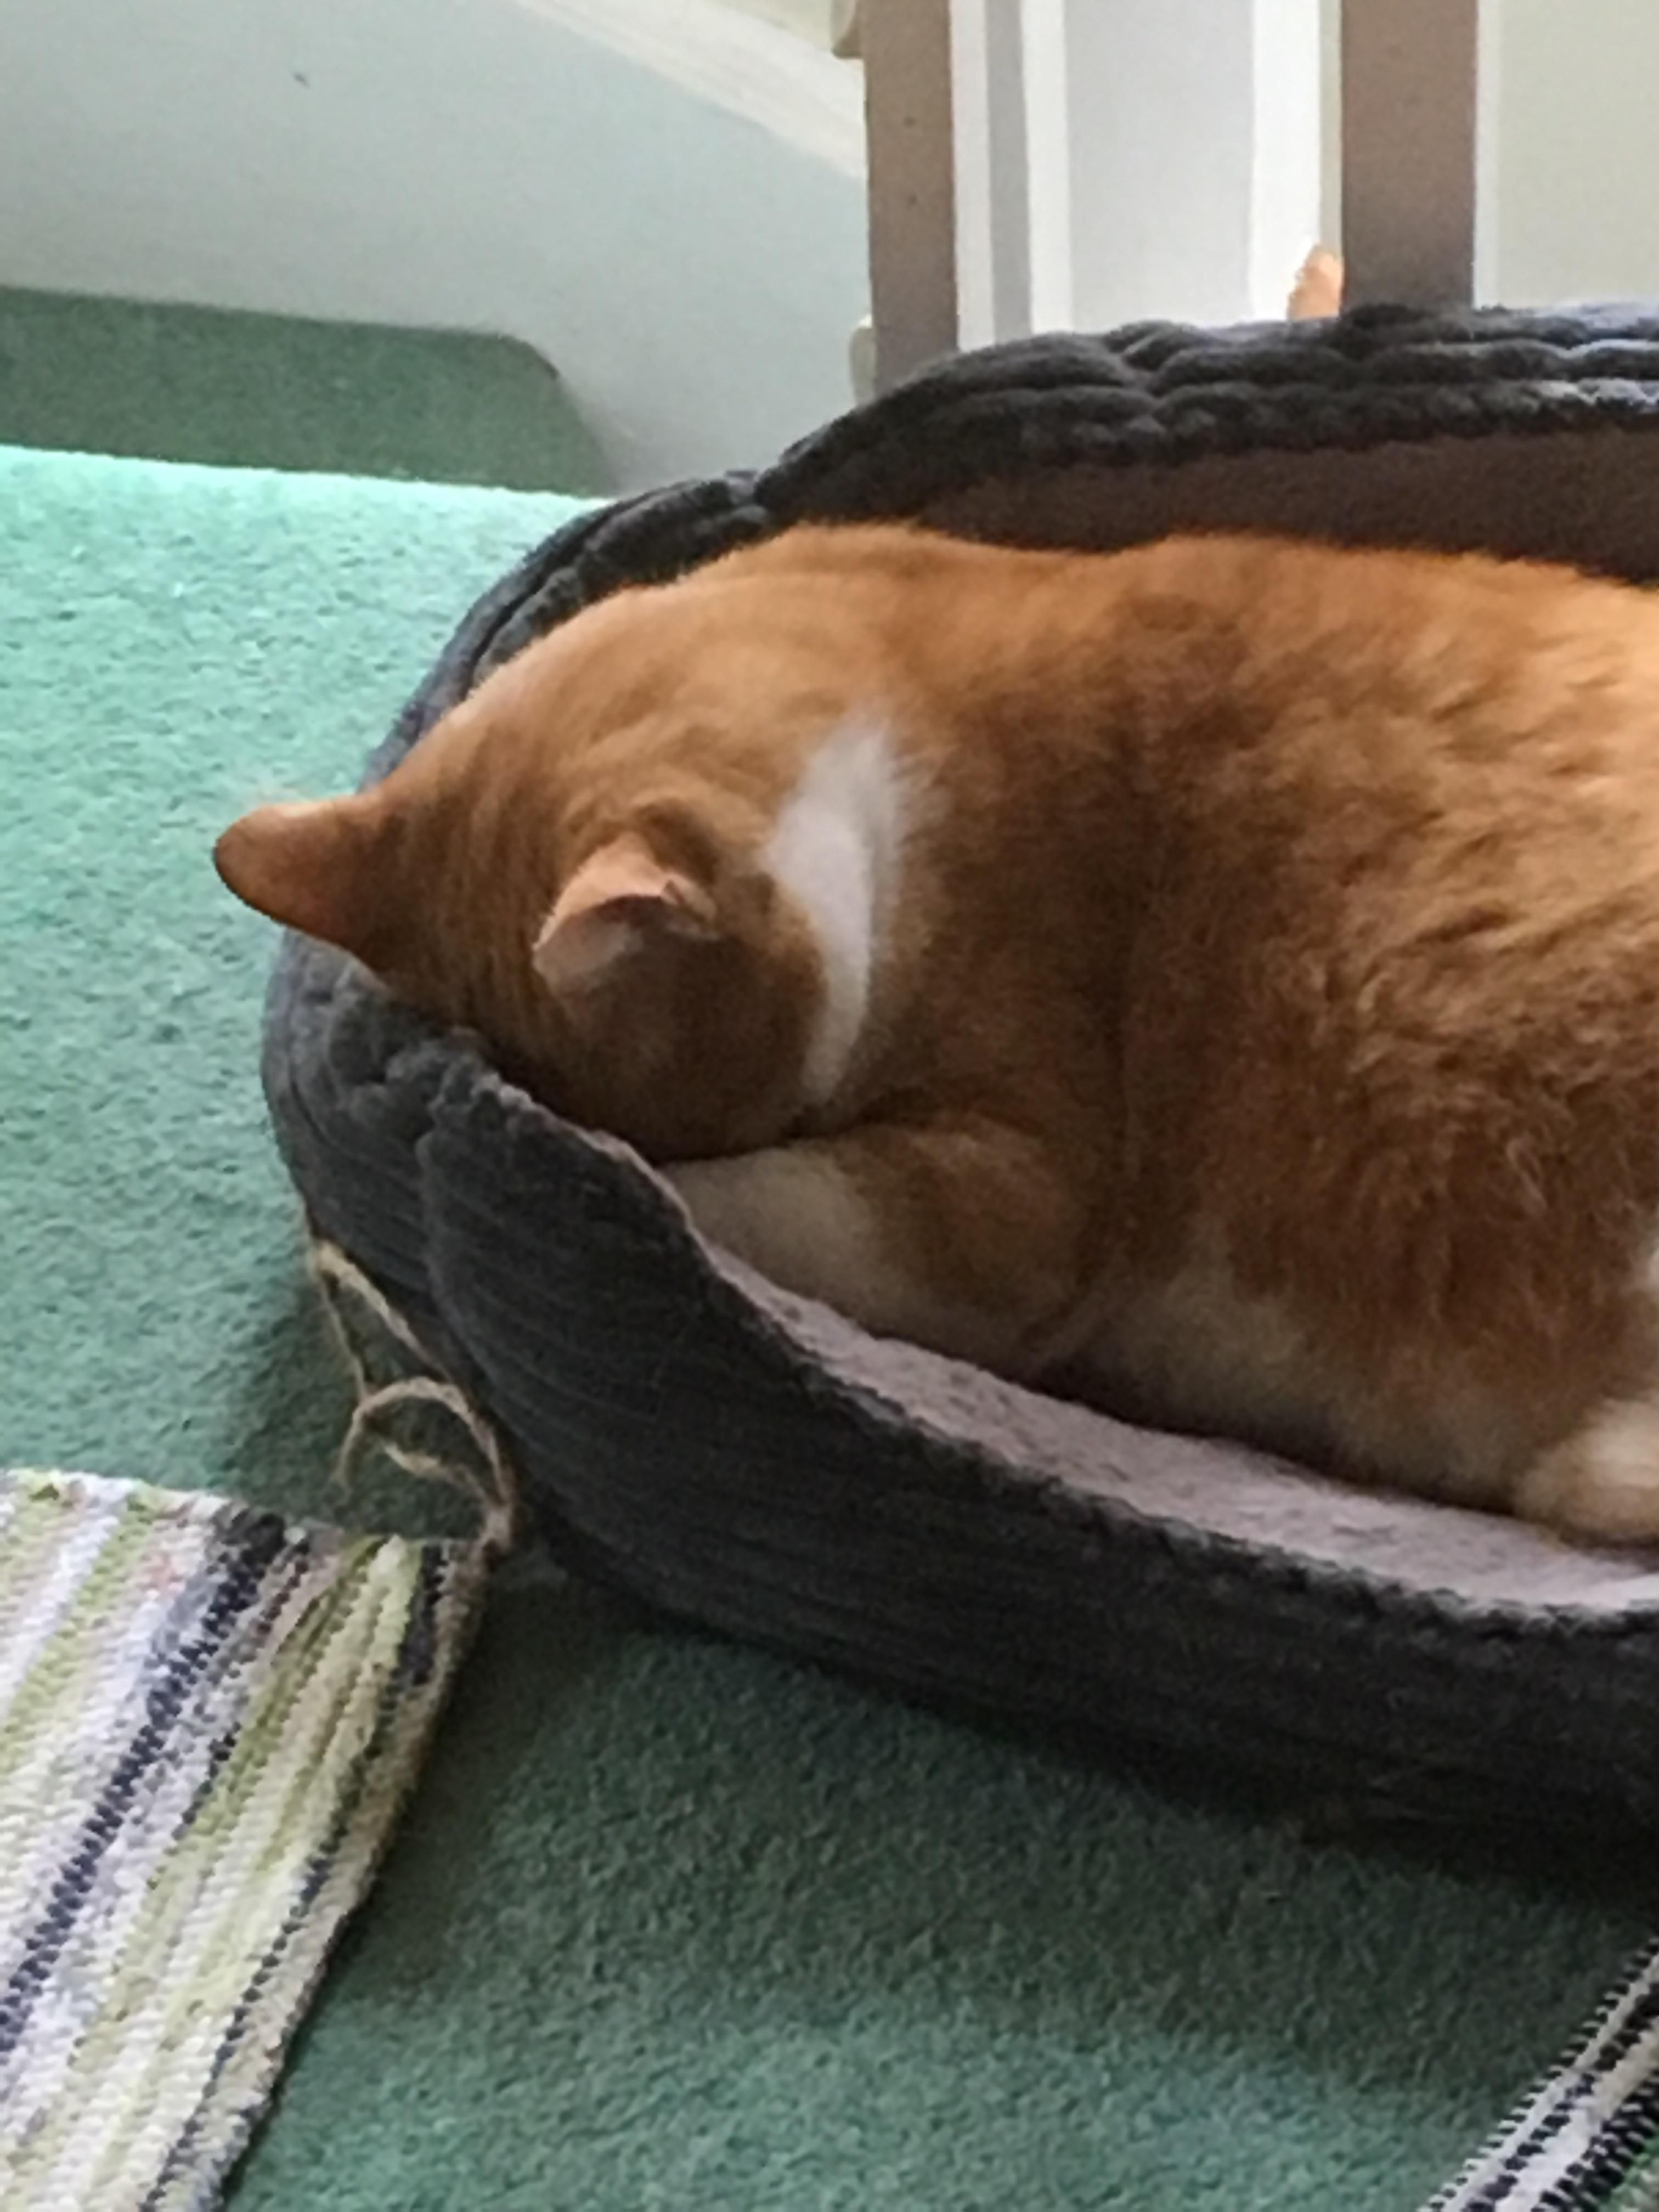 Faceplanted into bed! #aww #cute #cutecats #catsofpinterest #cuddle #fluffy #animals #pets #bestfriend #boopthesnoot